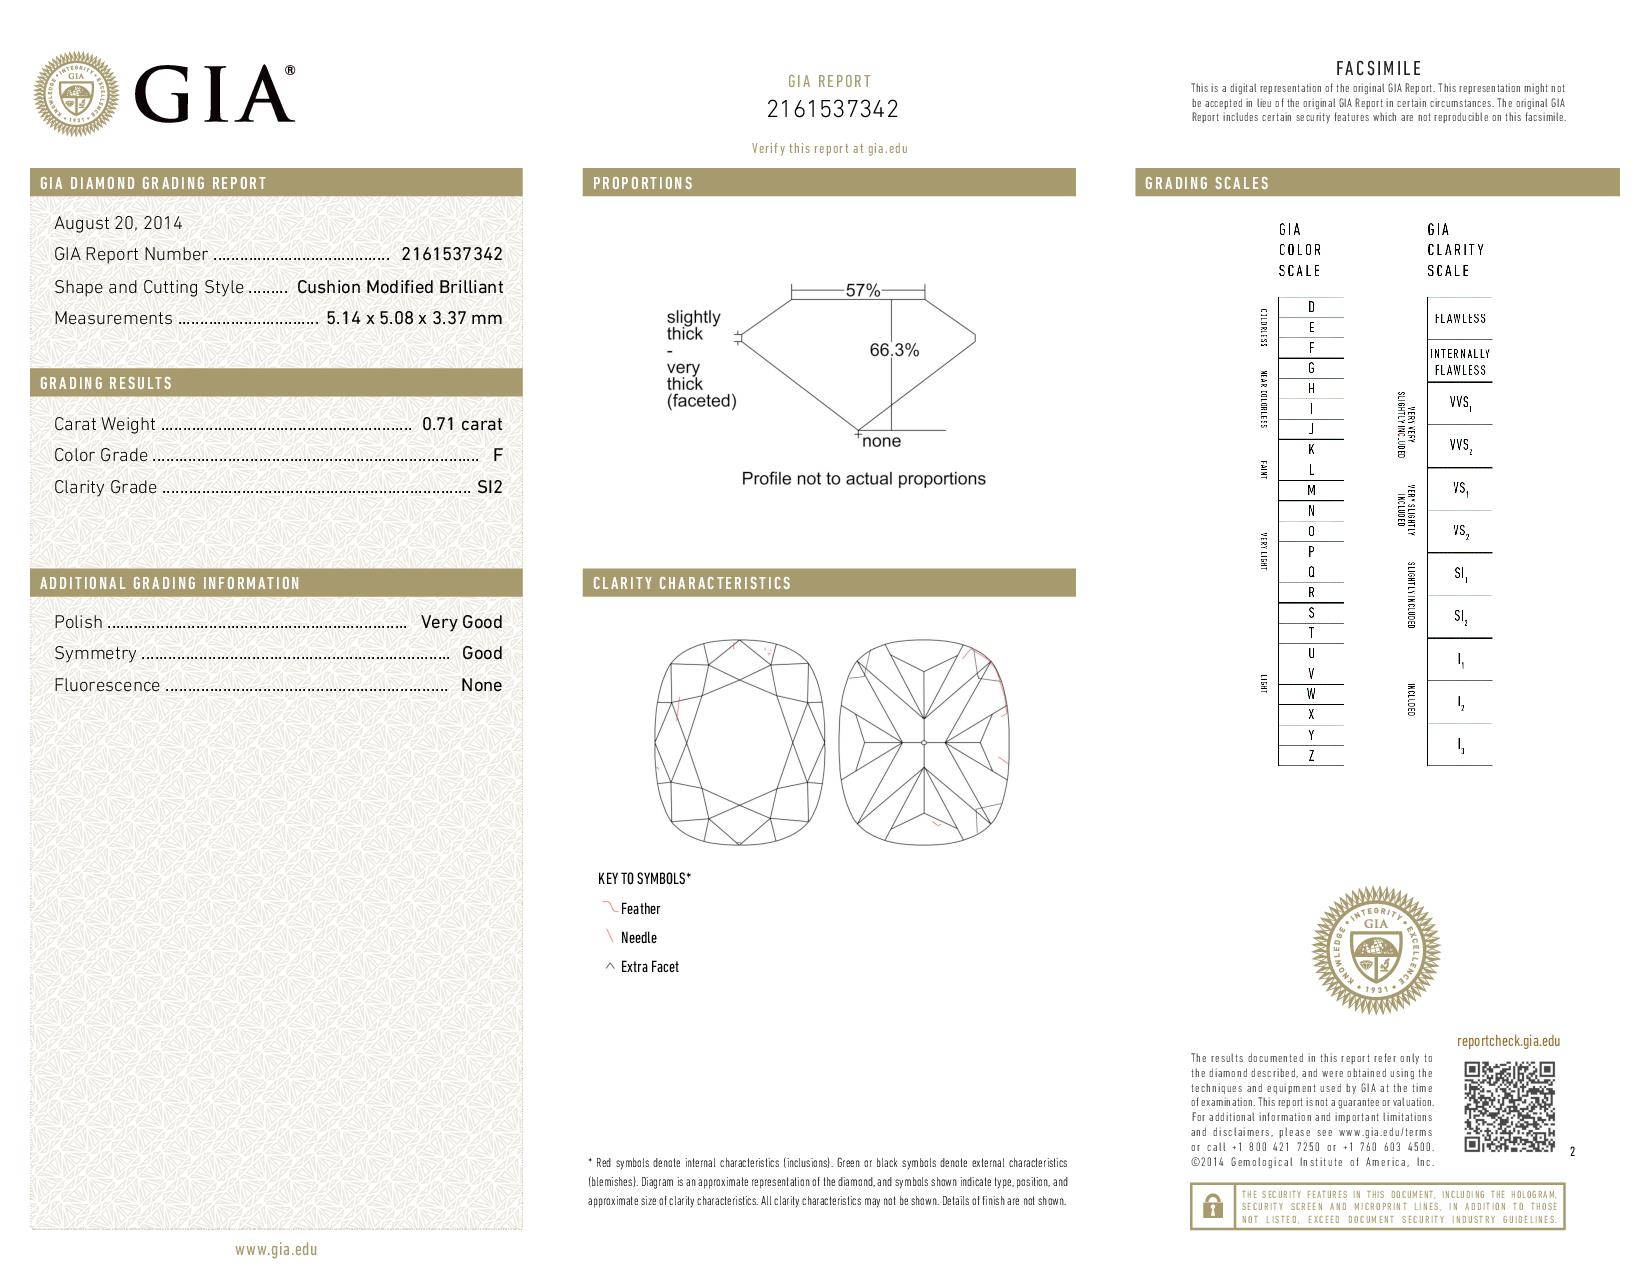 This is a 0.71 carat cushion shape, F color, SI2 clarity natural diamond accompanied by a GIA grading report.